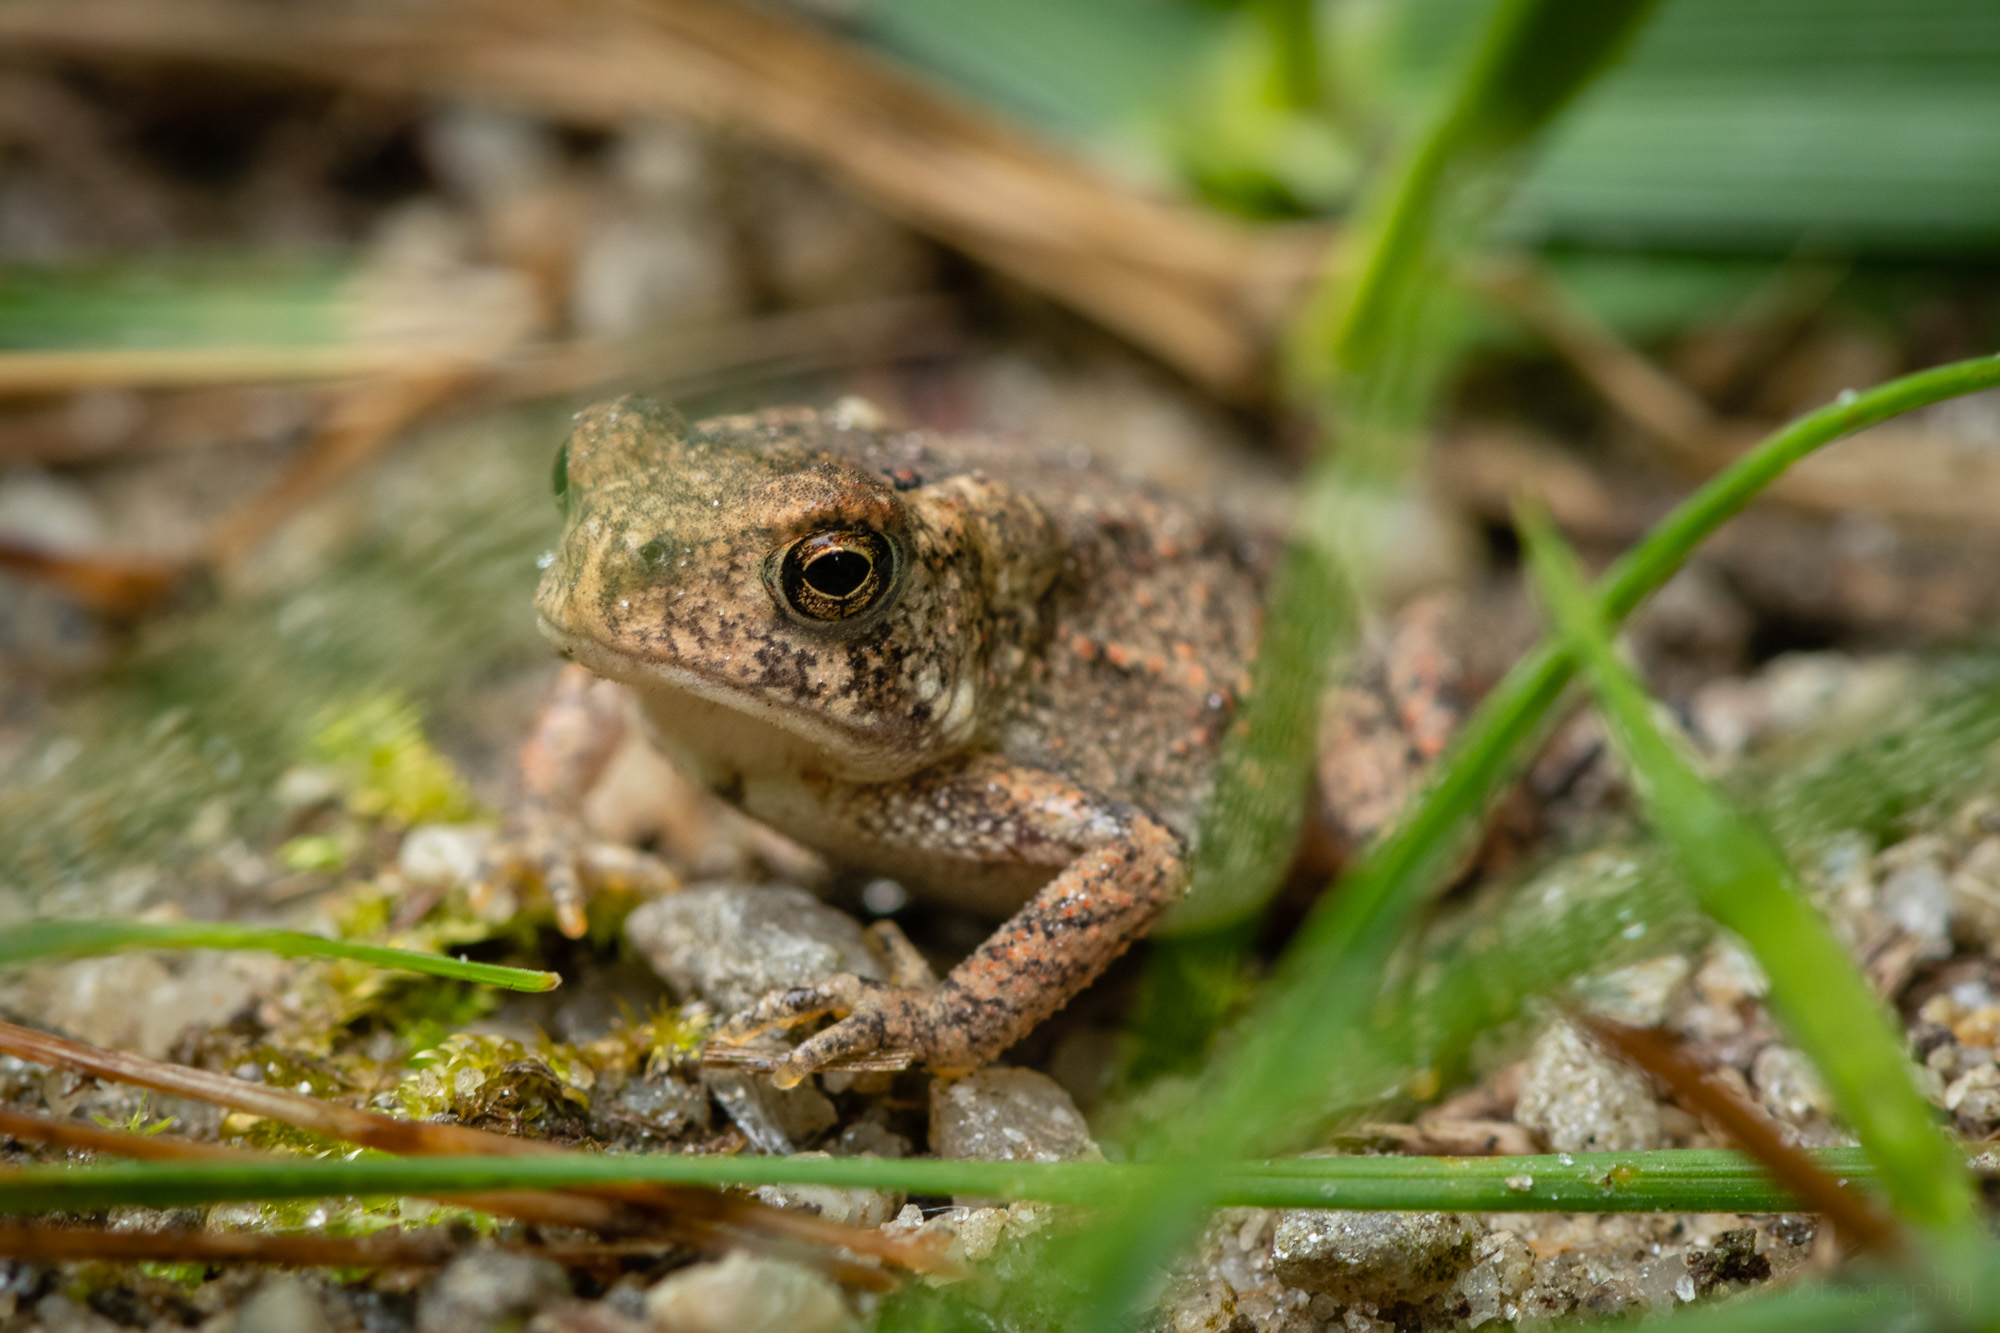 A very small young Eastern American Toad, or perhaps a Fowler's Toad.